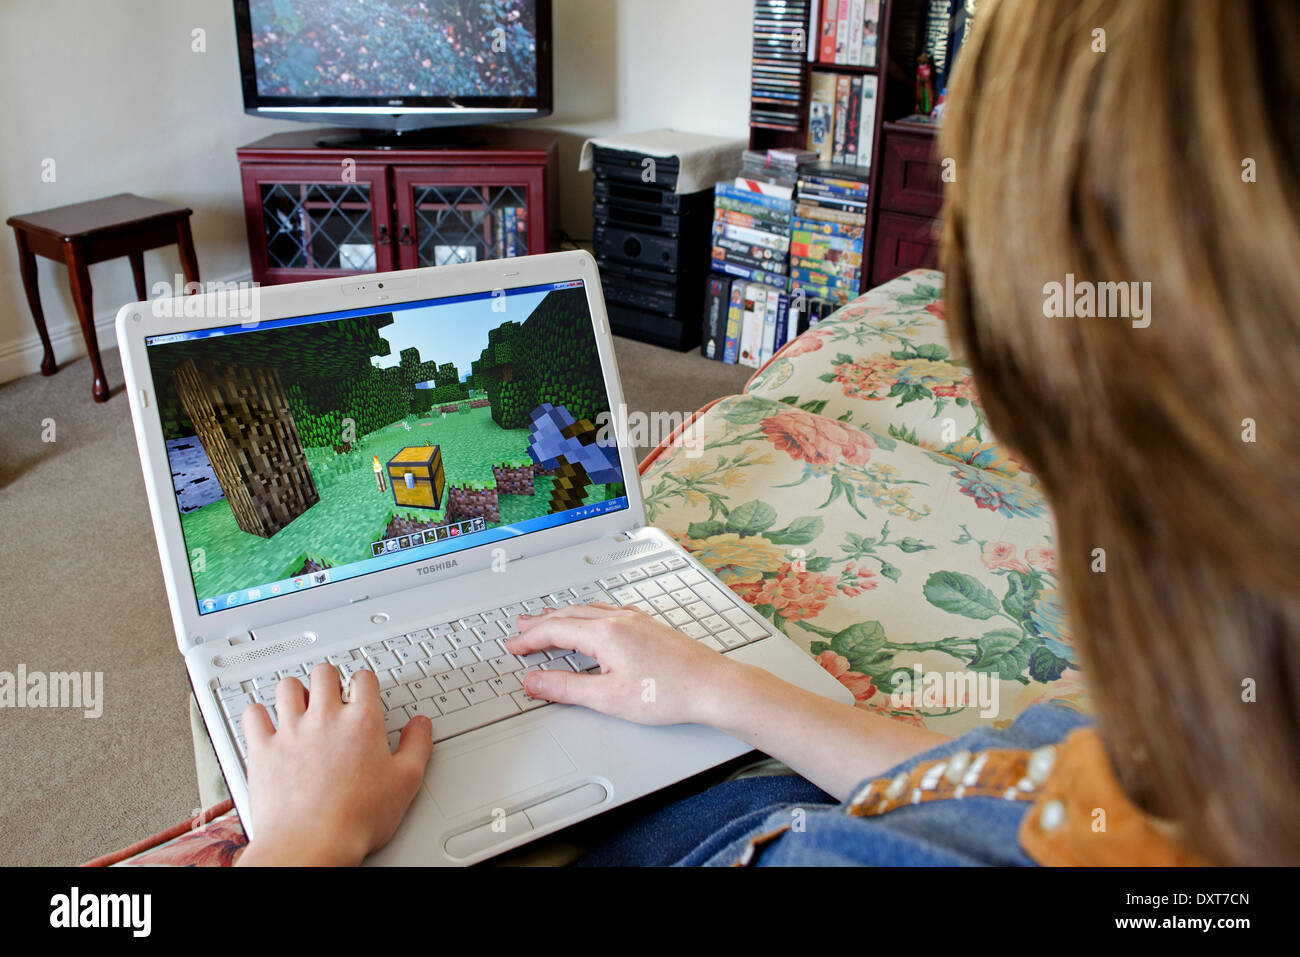 a teenage boy playing Minecraft on a laptop computer whilst watching television - Stock Image